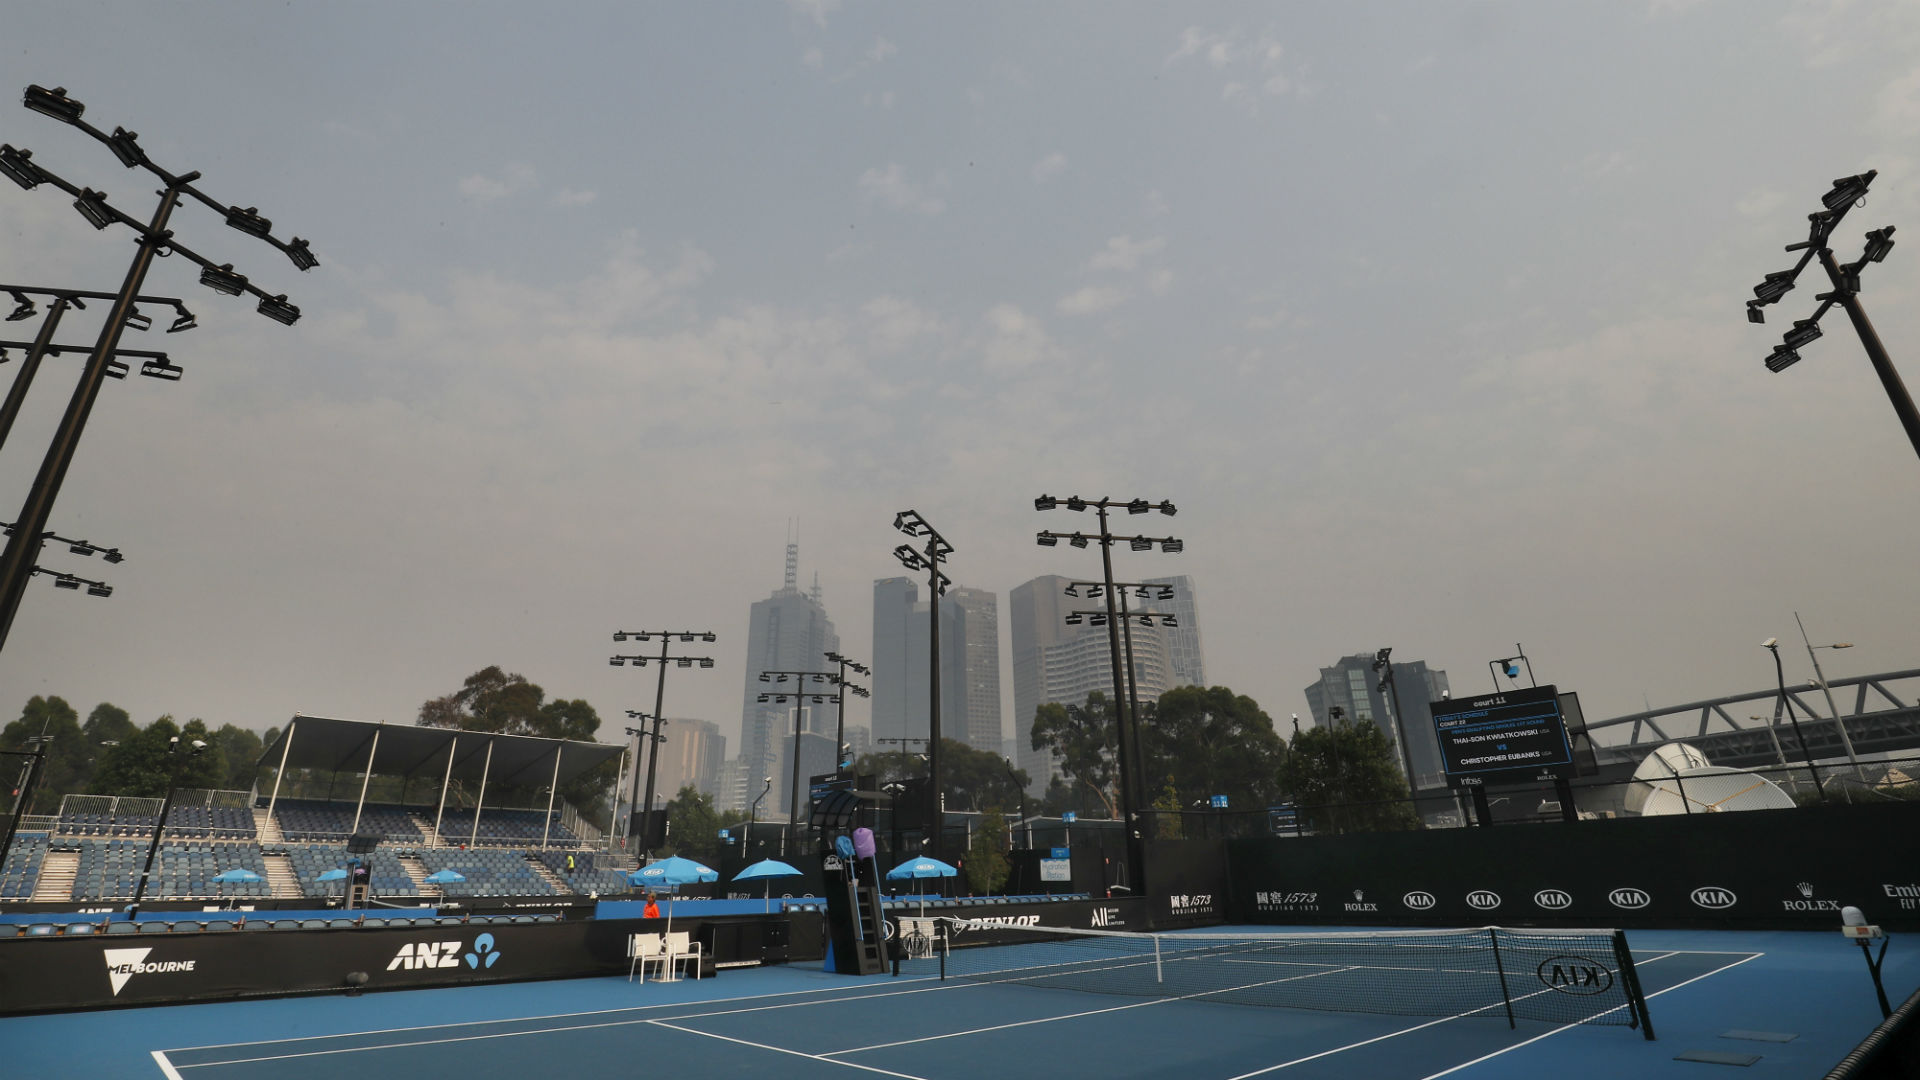 Improvements in the air quality in Melbourne were forecast on Wednesday, but Australian Open organisers delayed the start of play.